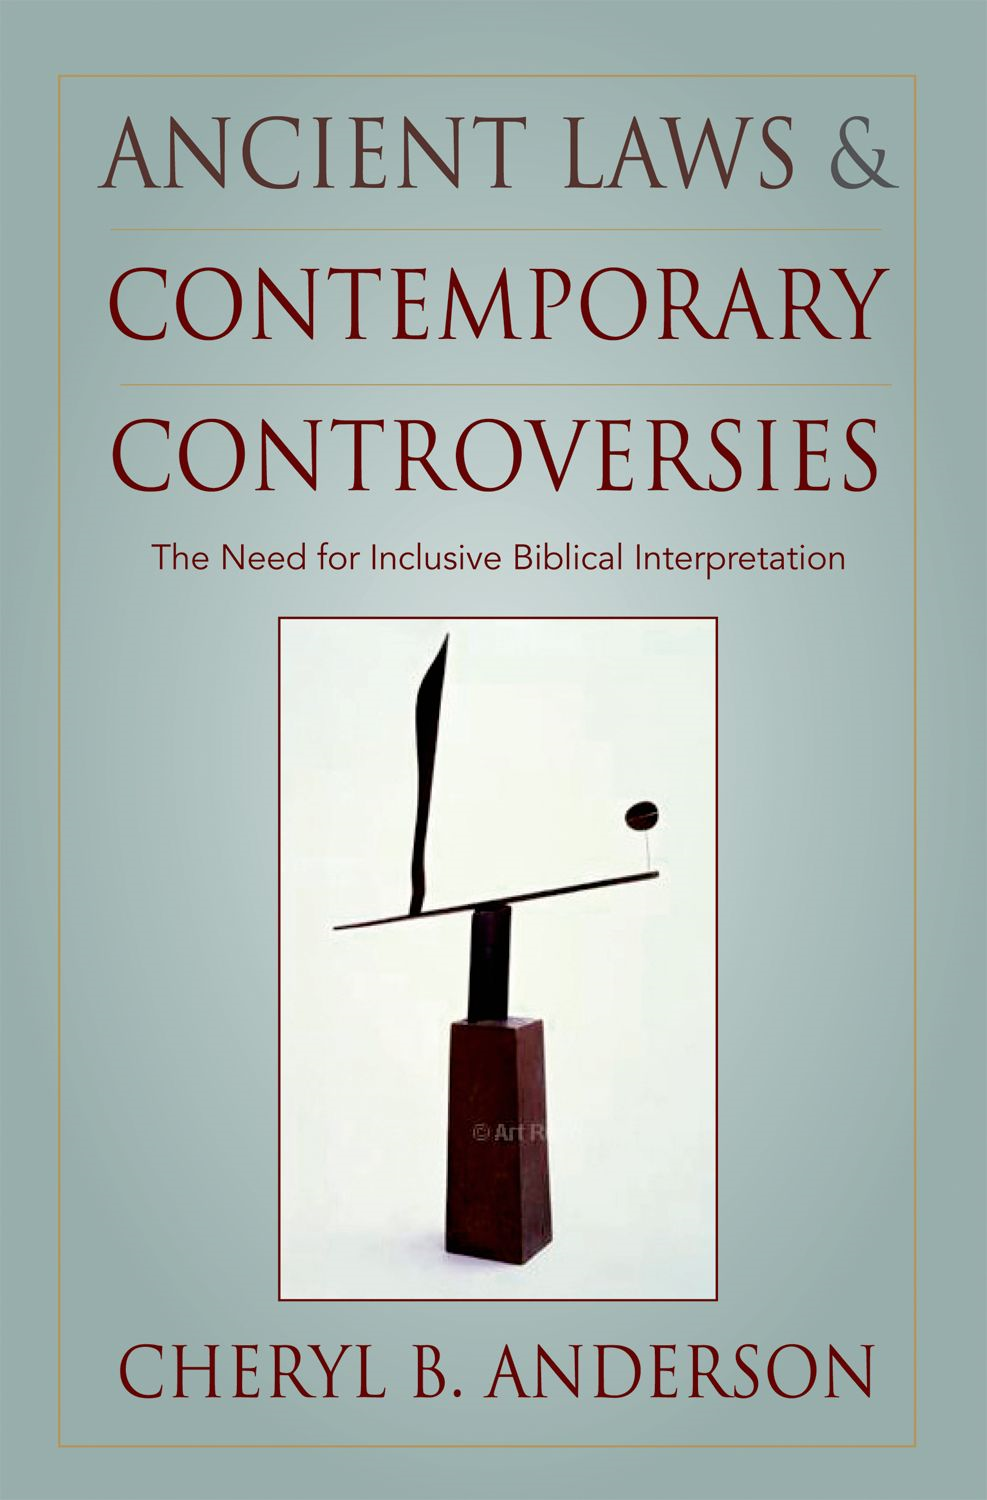 Ancient Laws and Contemporary Controversies: The Need for Inclusive Biblical Interpretation